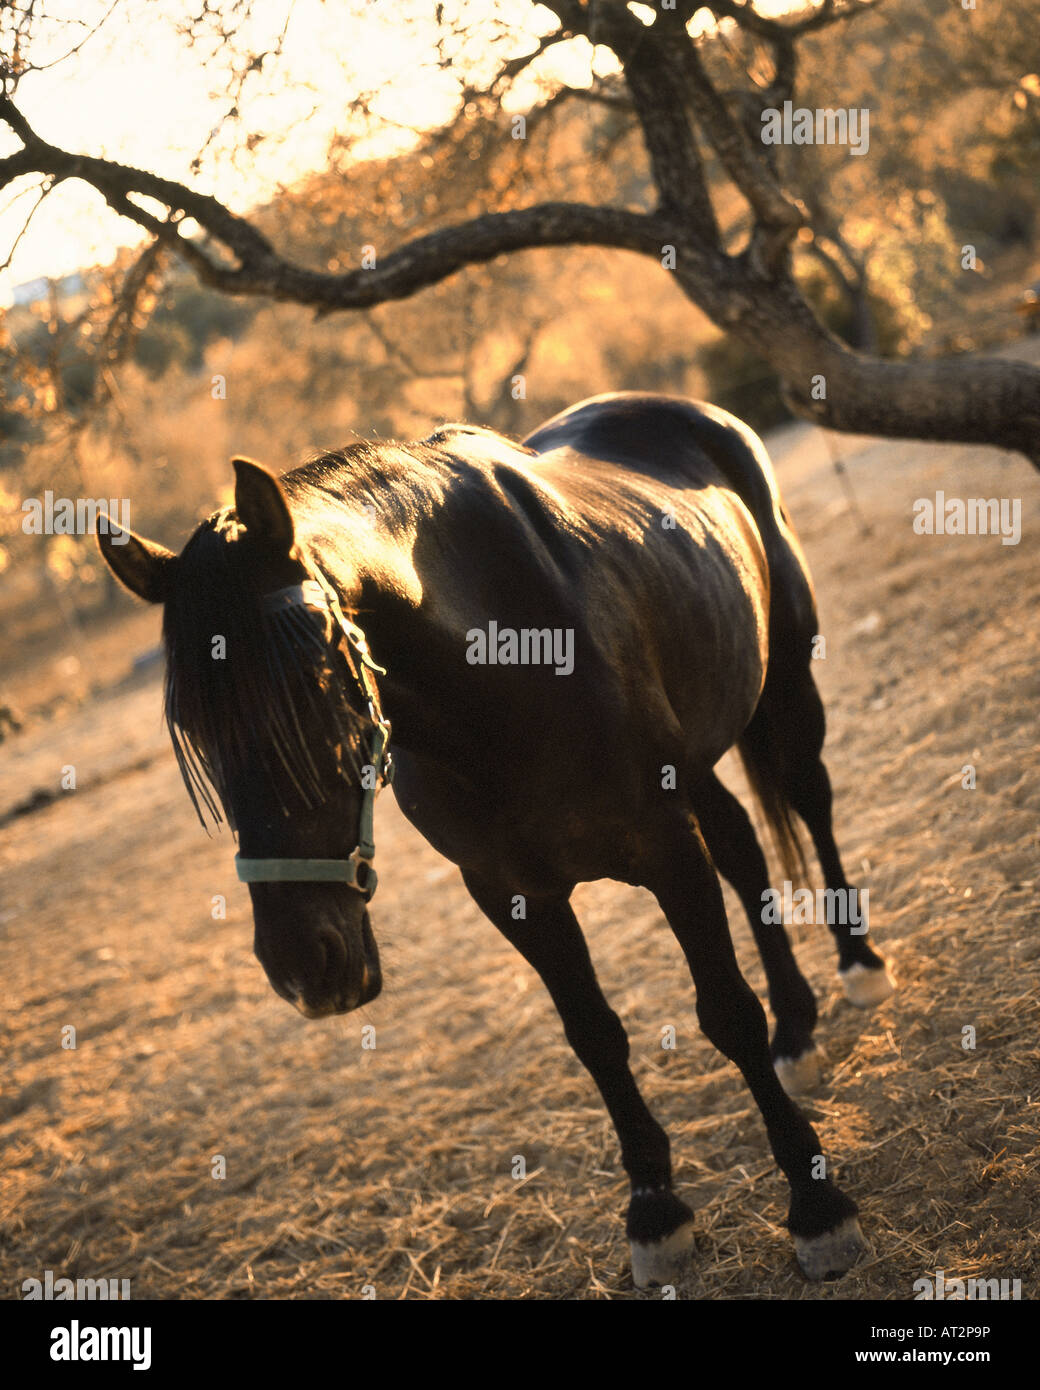 Brown horse, standing under a tree in the final sunset of a warm sunny day in the algarve portugal. - Stock Image